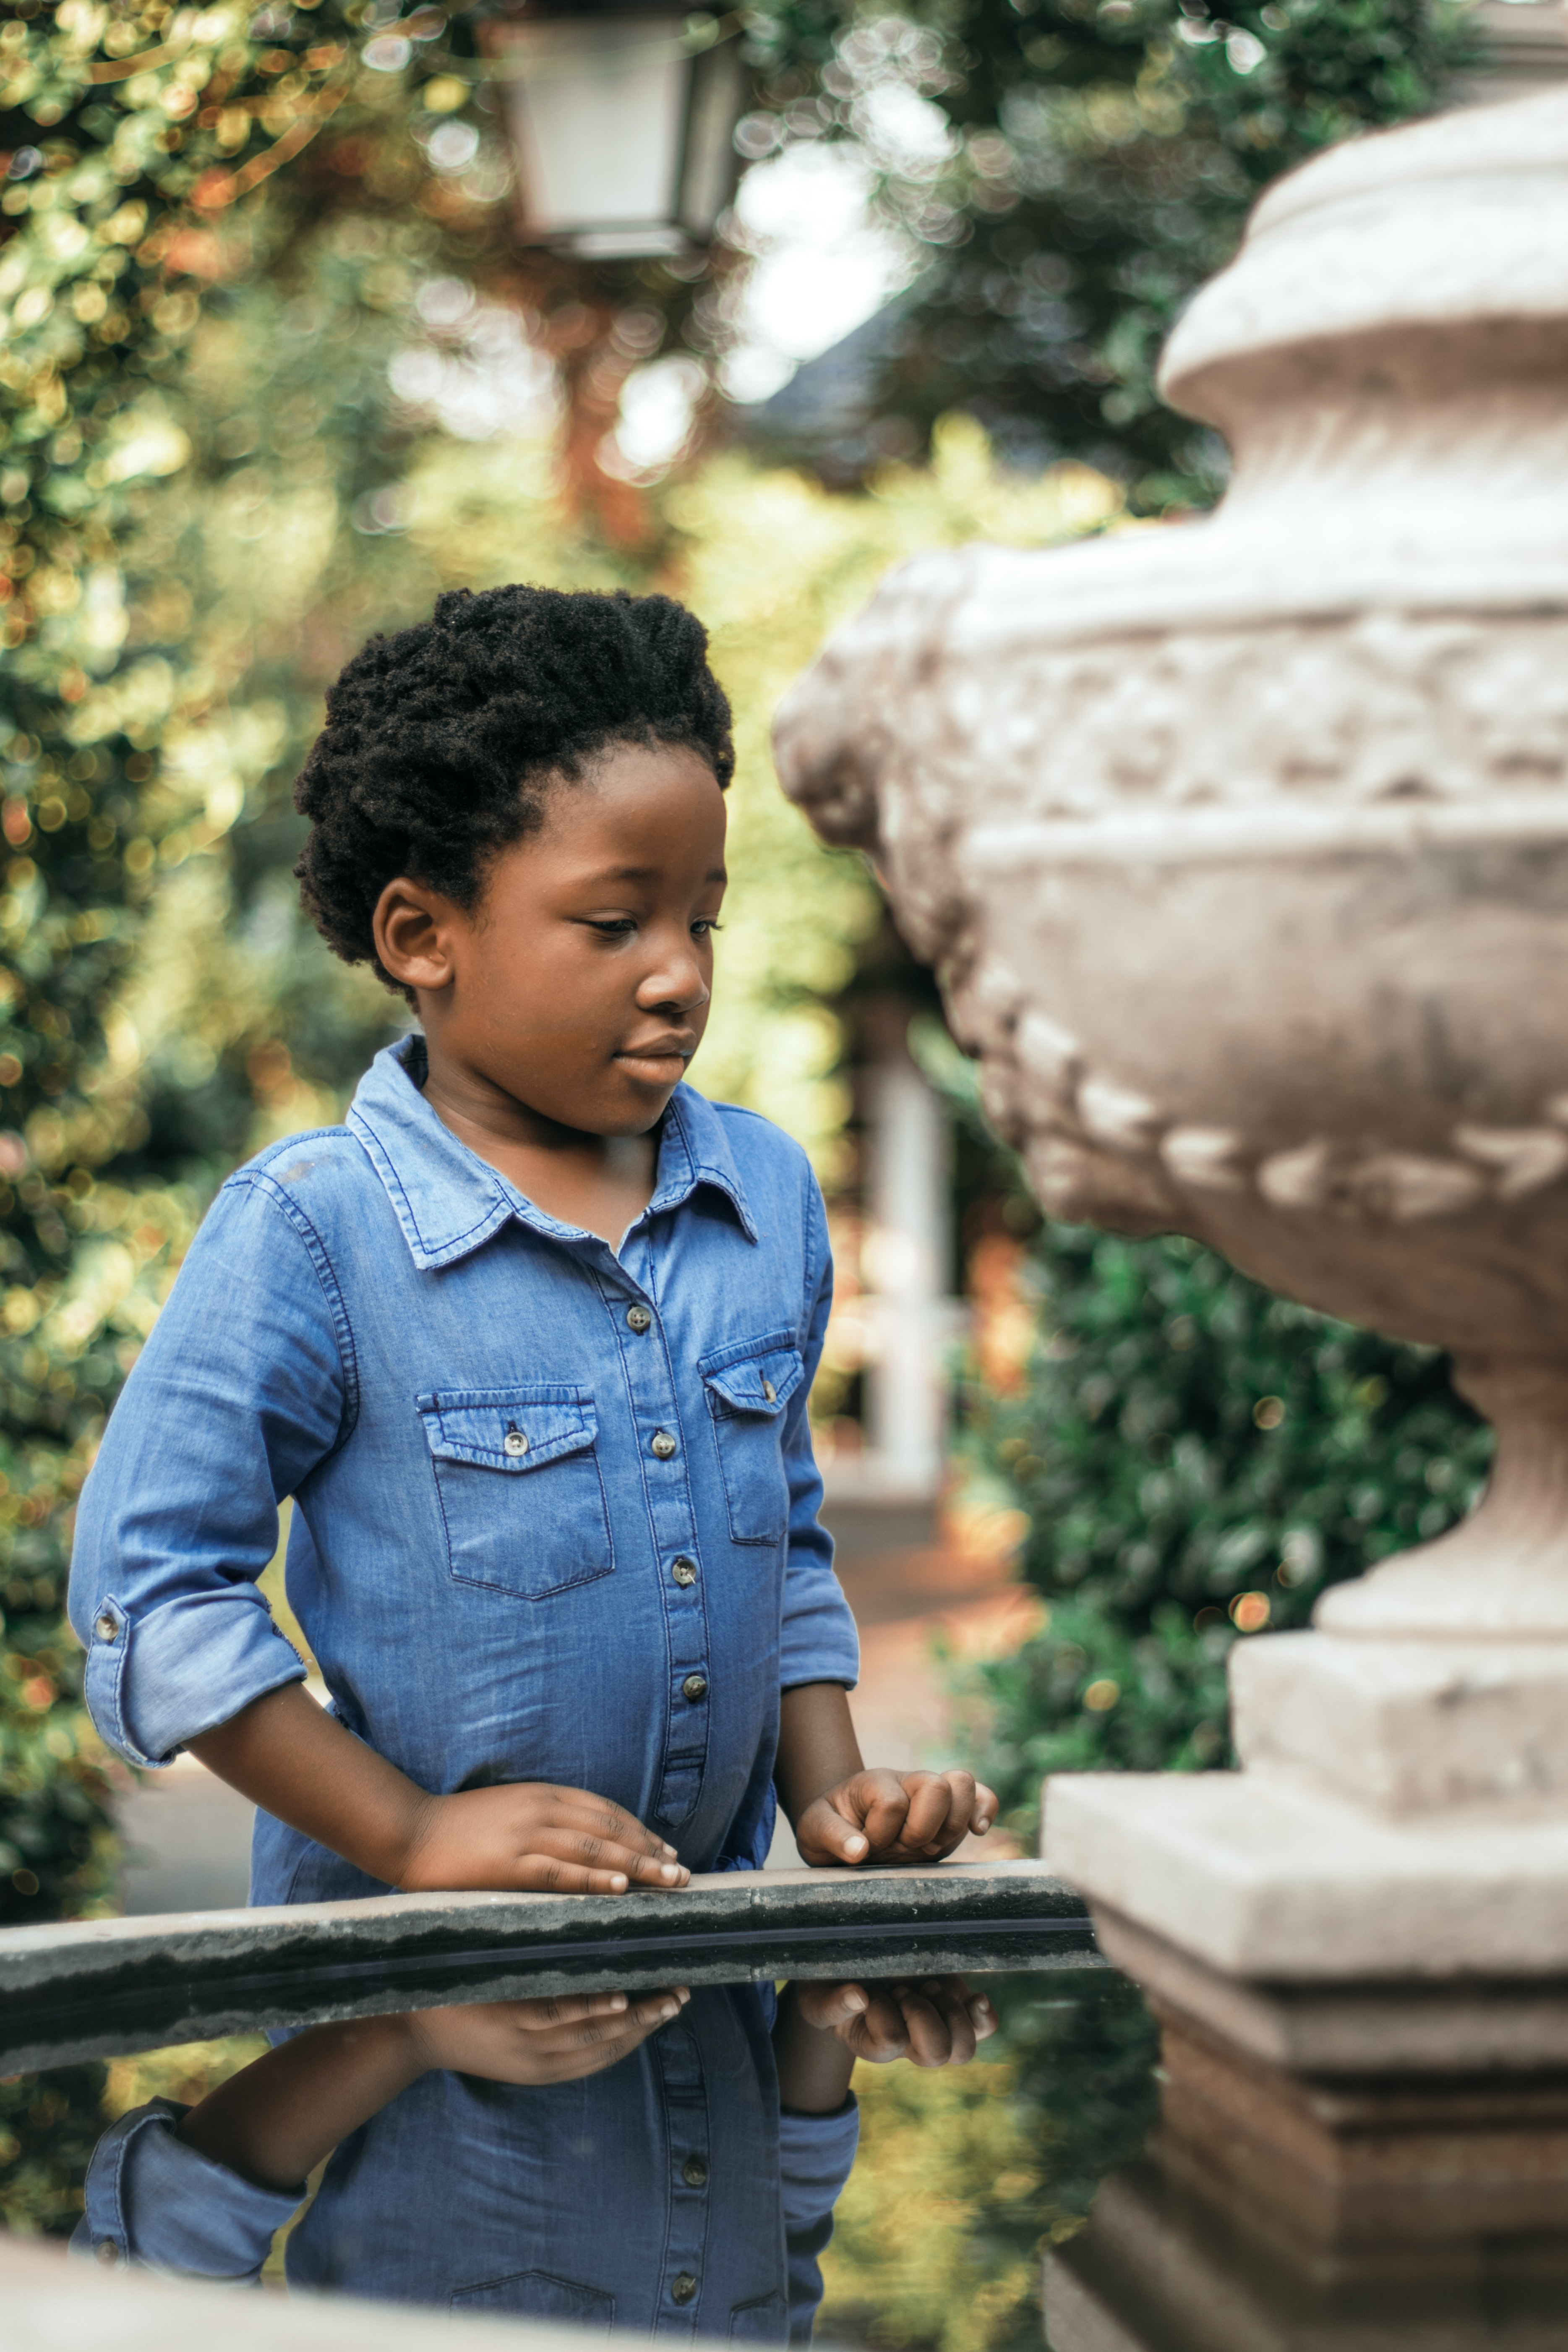 boy staring at the fountain during daytime